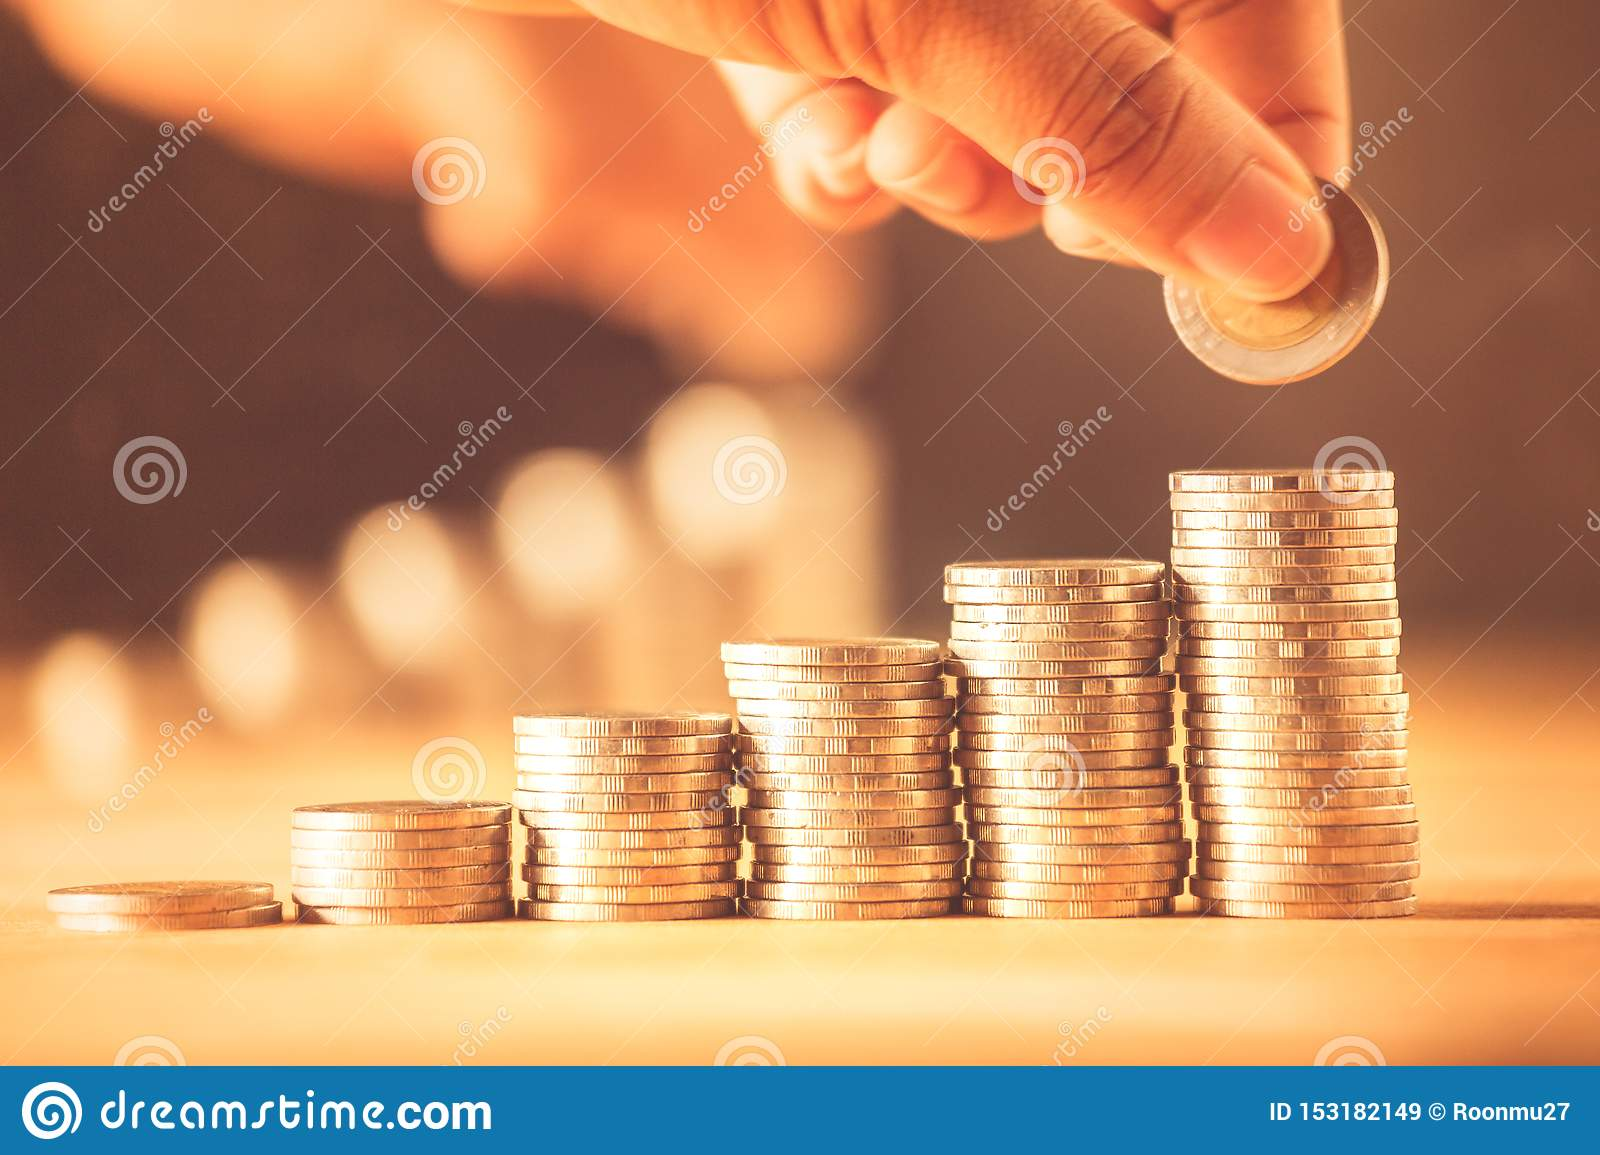 Hand putting money coins stack for save money concept. Money management is growing a business